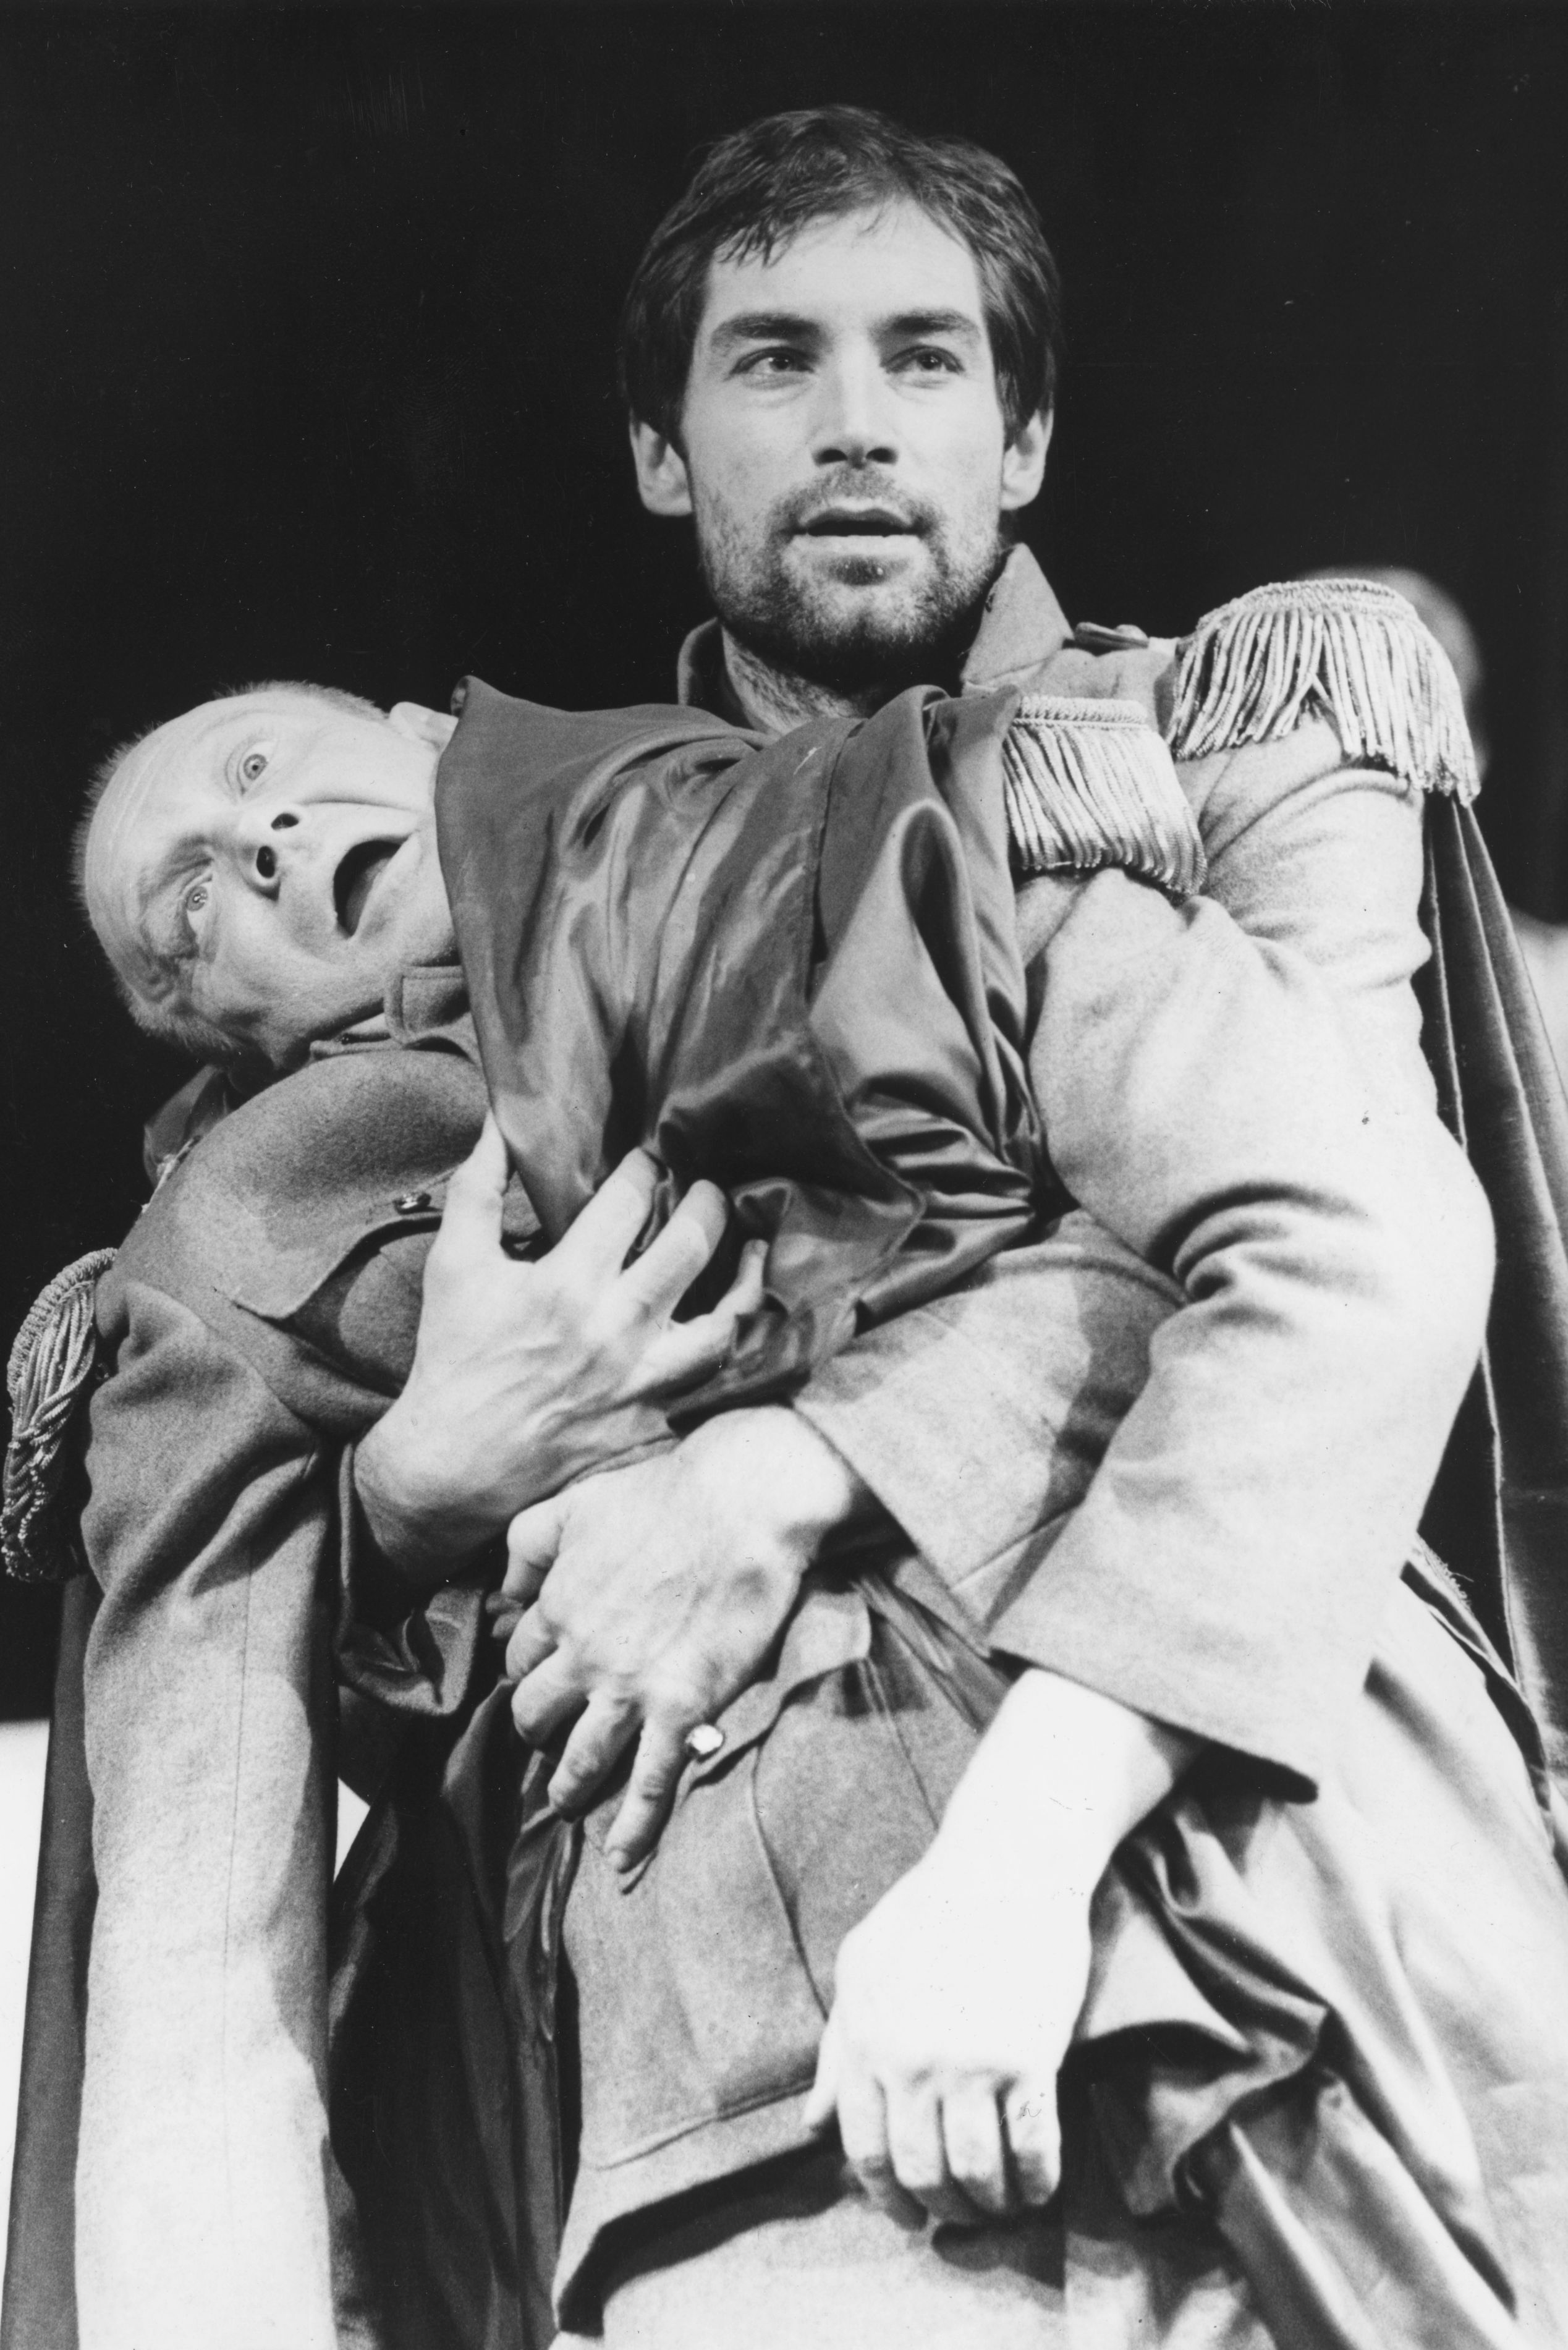 Julius Caesar (played by Morgan Sheppard) slumps dying in the arms of Antony (played by Timothy Dalton) during a performance of 'Shakespeare's Rome' at the Mermaid Theatre, London. (Source: Getty images)